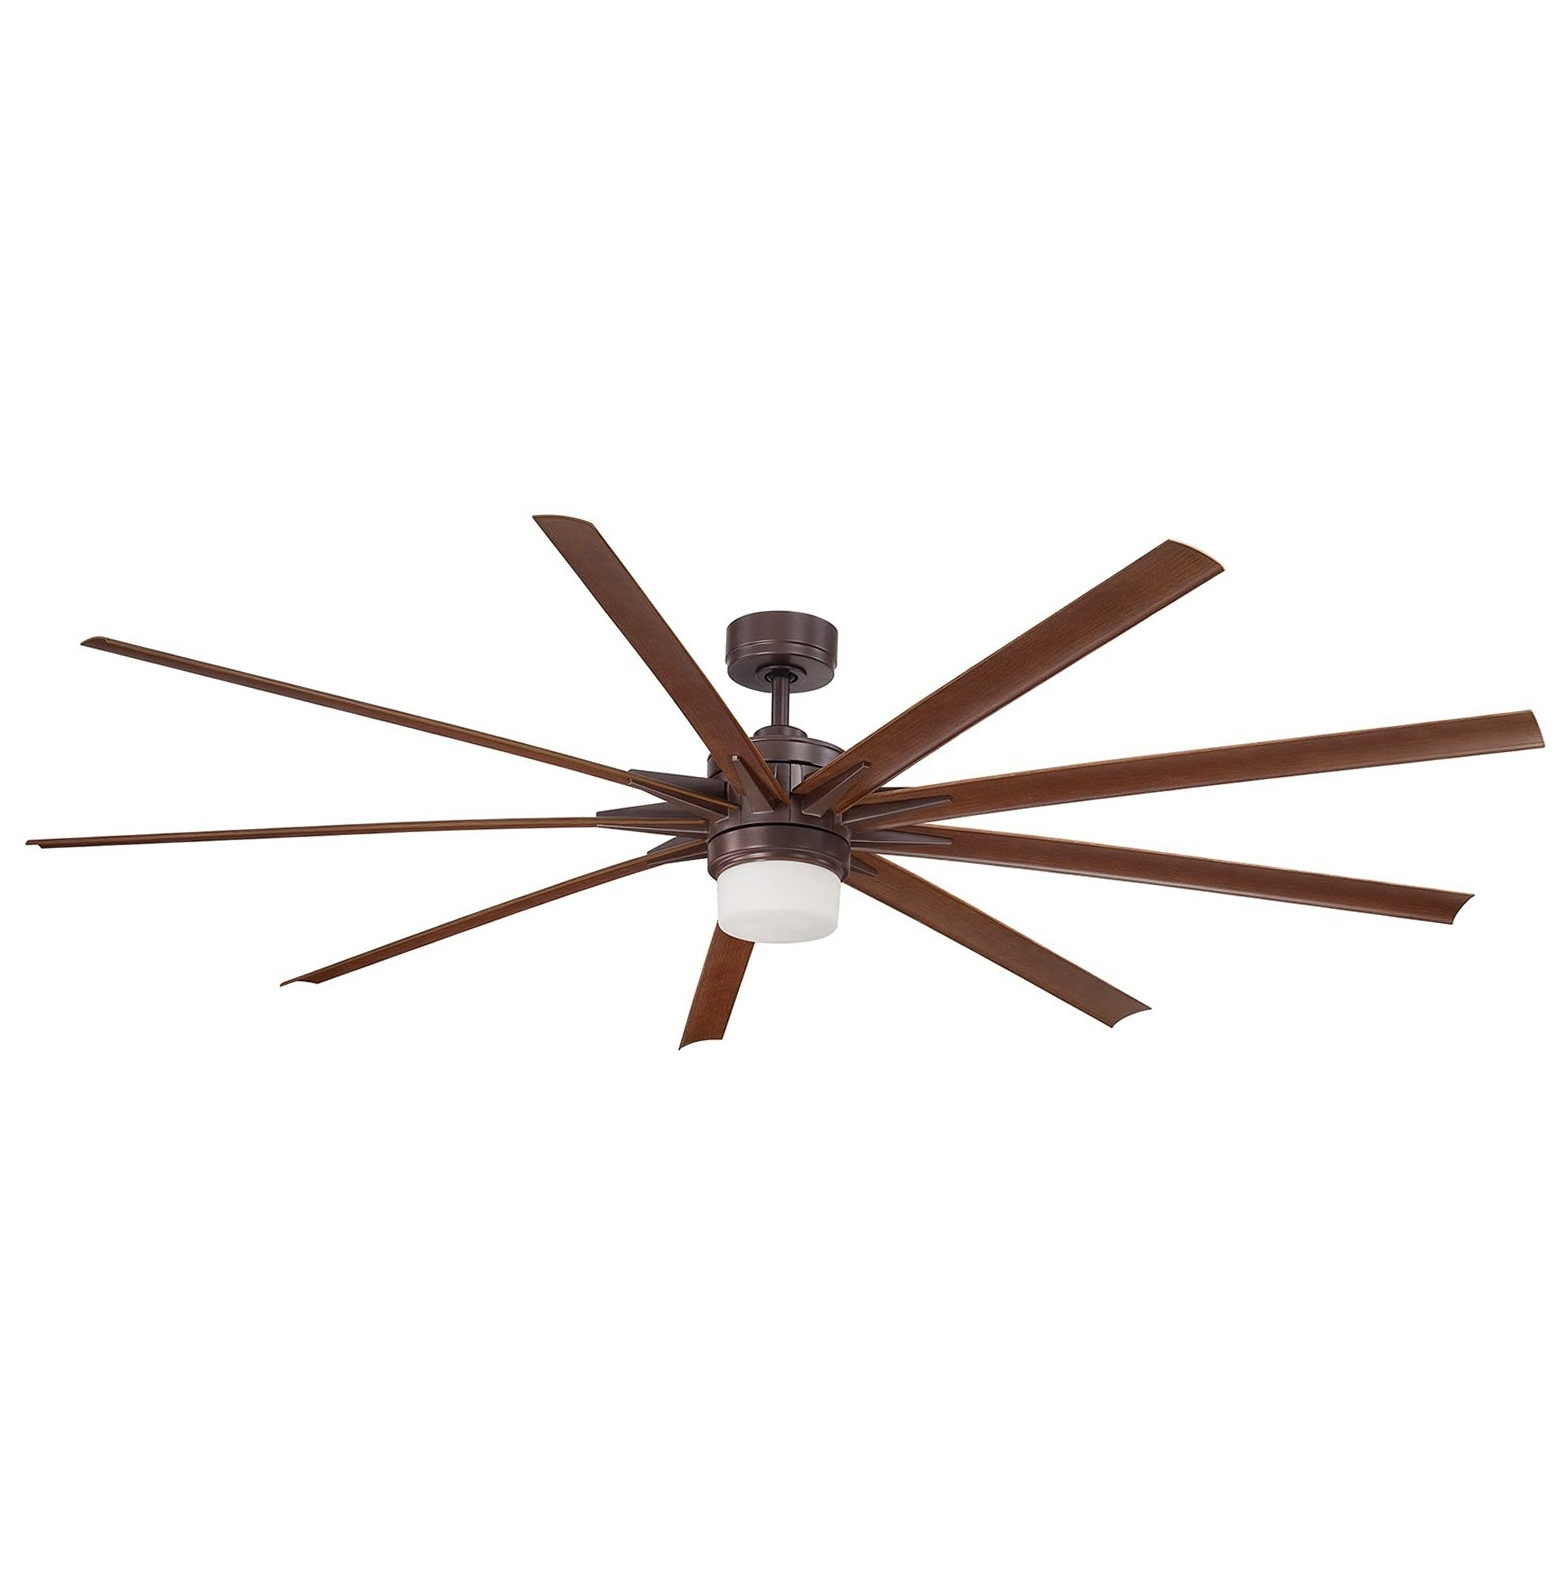 Lowes Ceiling Fan (View 5 of 20)